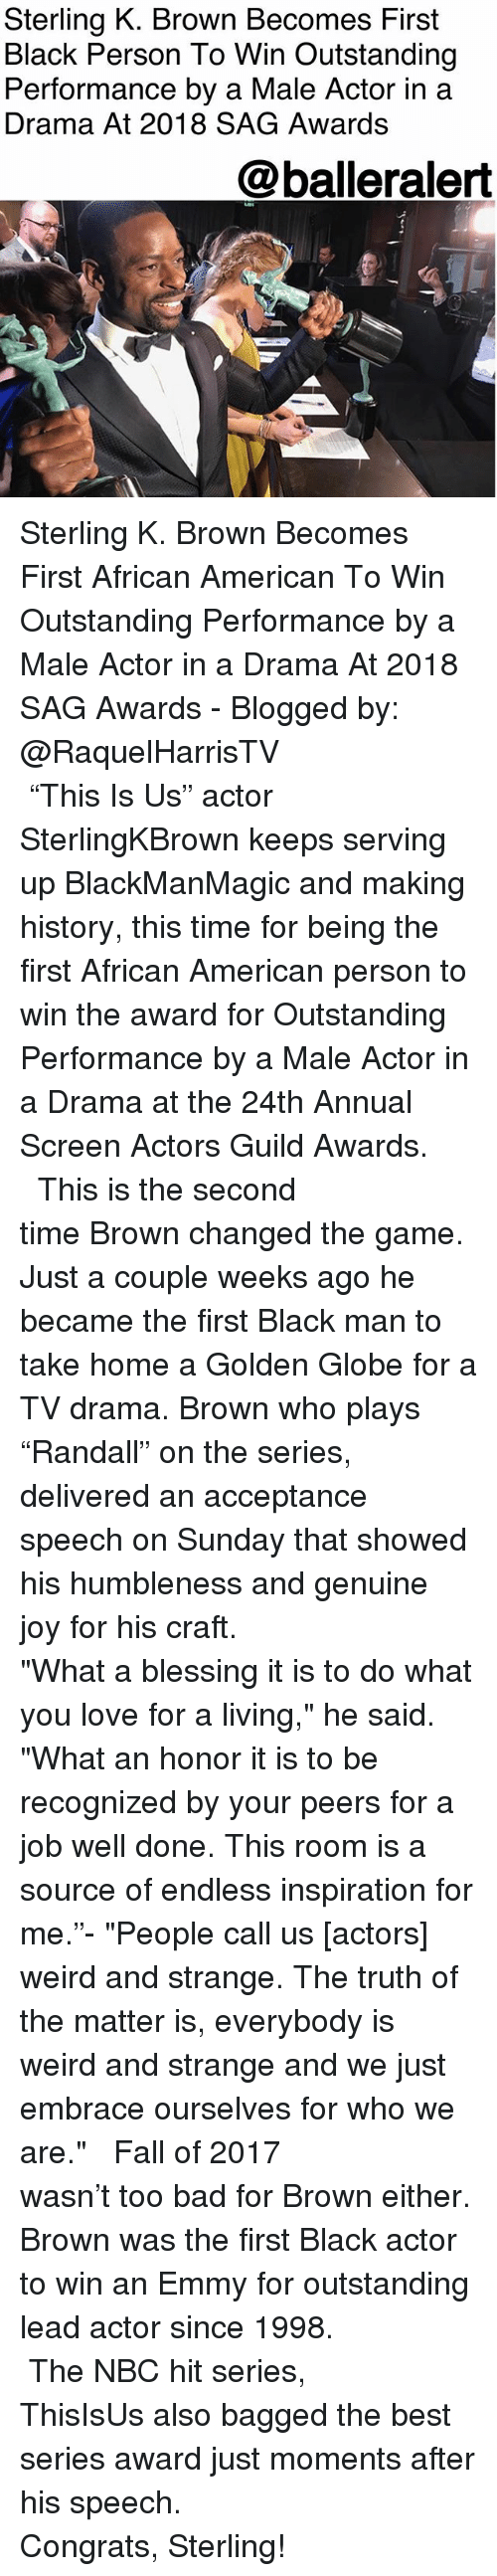 "Bad, Fall, and Love: Sterling K. Brown Becomes First  Black Person To Win Outstanding  Performance by a Male Actor in a  Drama At 2018 SAG Awards  @balleralert  4 Sterling K. Brown Becomes First African American To Win Outstanding Performance by a Male Actor in a Drama At 2018 SAG Awards - Blogged by: @RaquelHarrisTV⠀⠀⠀⠀⠀⠀⠀⠀⠀ ⠀⠀⠀⠀⠀⠀⠀ ⠀⠀⠀⠀⠀⠀⠀ ""This Is Us"" actor SterlingKBrown keeps serving up BlackManMagic and making history, this time for being the first African American person to win the award for Outstanding Performance by a Male Actor in a Drama at the 24th Annual Screen Actors Guild Awards. ⠀⠀⠀⠀⠀⠀⠀⠀⠀ ⠀⠀⠀⠀⠀⠀⠀⠀⠀ This is the second time Brown changed the game. Just a couple weeks ago he became the first Black man to take home a Golden Globe for a TV drama. Brown who plays ""Randall"" on the series, delivered an acceptance speech on Sunday that showed his humbleness and genuine joy for his craft. ⠀⠀⠀⠀⠀⠀⠀⠀⠀ ⠀⠀⠀⠀⠀⠀⠀⠀⠀ ""What a blessing it is to do what you love for a living,"" he said. ""What an honor it is to be recognized by your peers for a job well done. This room is a source of endless inspiration for me.""- ""People call us [actors] weird and strange. The truth of the matter is, everybody is weird and strange and we just embrace ourselves for who we are."" ⠀⠀⠀⠀⠀⠀⠀⠀⠀ ⠀⠀⠀⠀⠀⠀⠀⠀⠀ Fall of 2017 wasn't too bad for Brown either. Brown was the first Black actor to win an Emmy for outstanding lead actor since 1998. ⠀⠀⠀⠀⠀⠀⠀⠀⠀ ⠀⠀⠀⠀⠀⠀⠀⠀⠀ The NBC hit series, ThisIsUs also bagged the best series award just moments after his speech. ⠀⠀⠀⠀⠀⠀⠀⠀⠀ ⠀⠀⠀⠀⠀⠀⠀⠀⠀ Congrats, Sterling!"